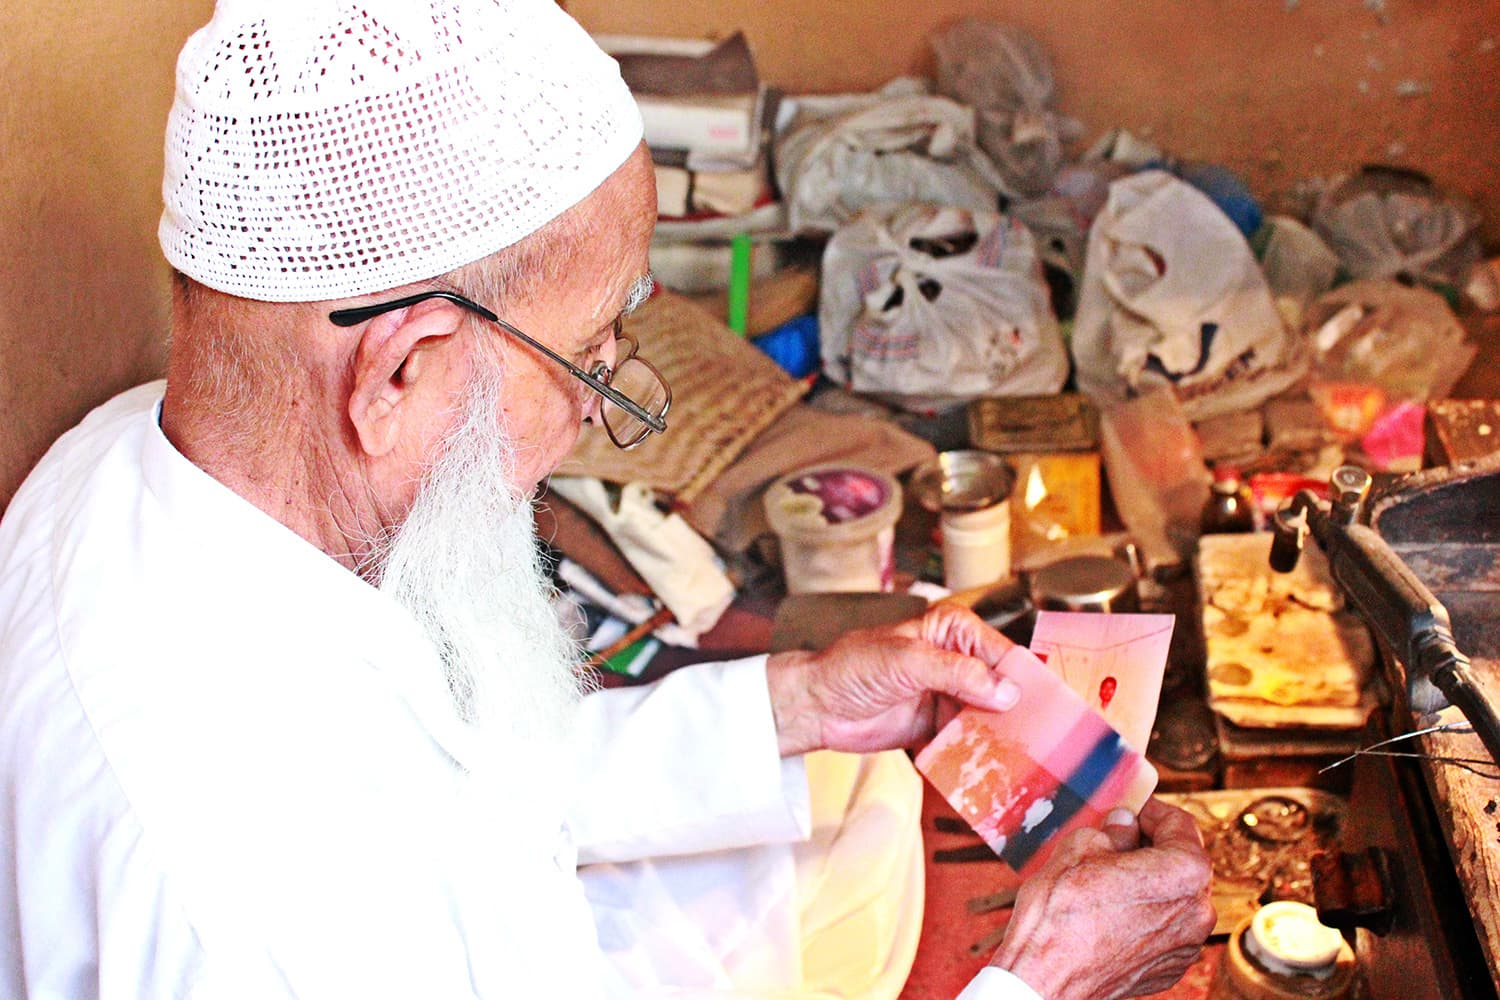 Hameed Ali Shah looking at old family pictures. – All photos provided by the author